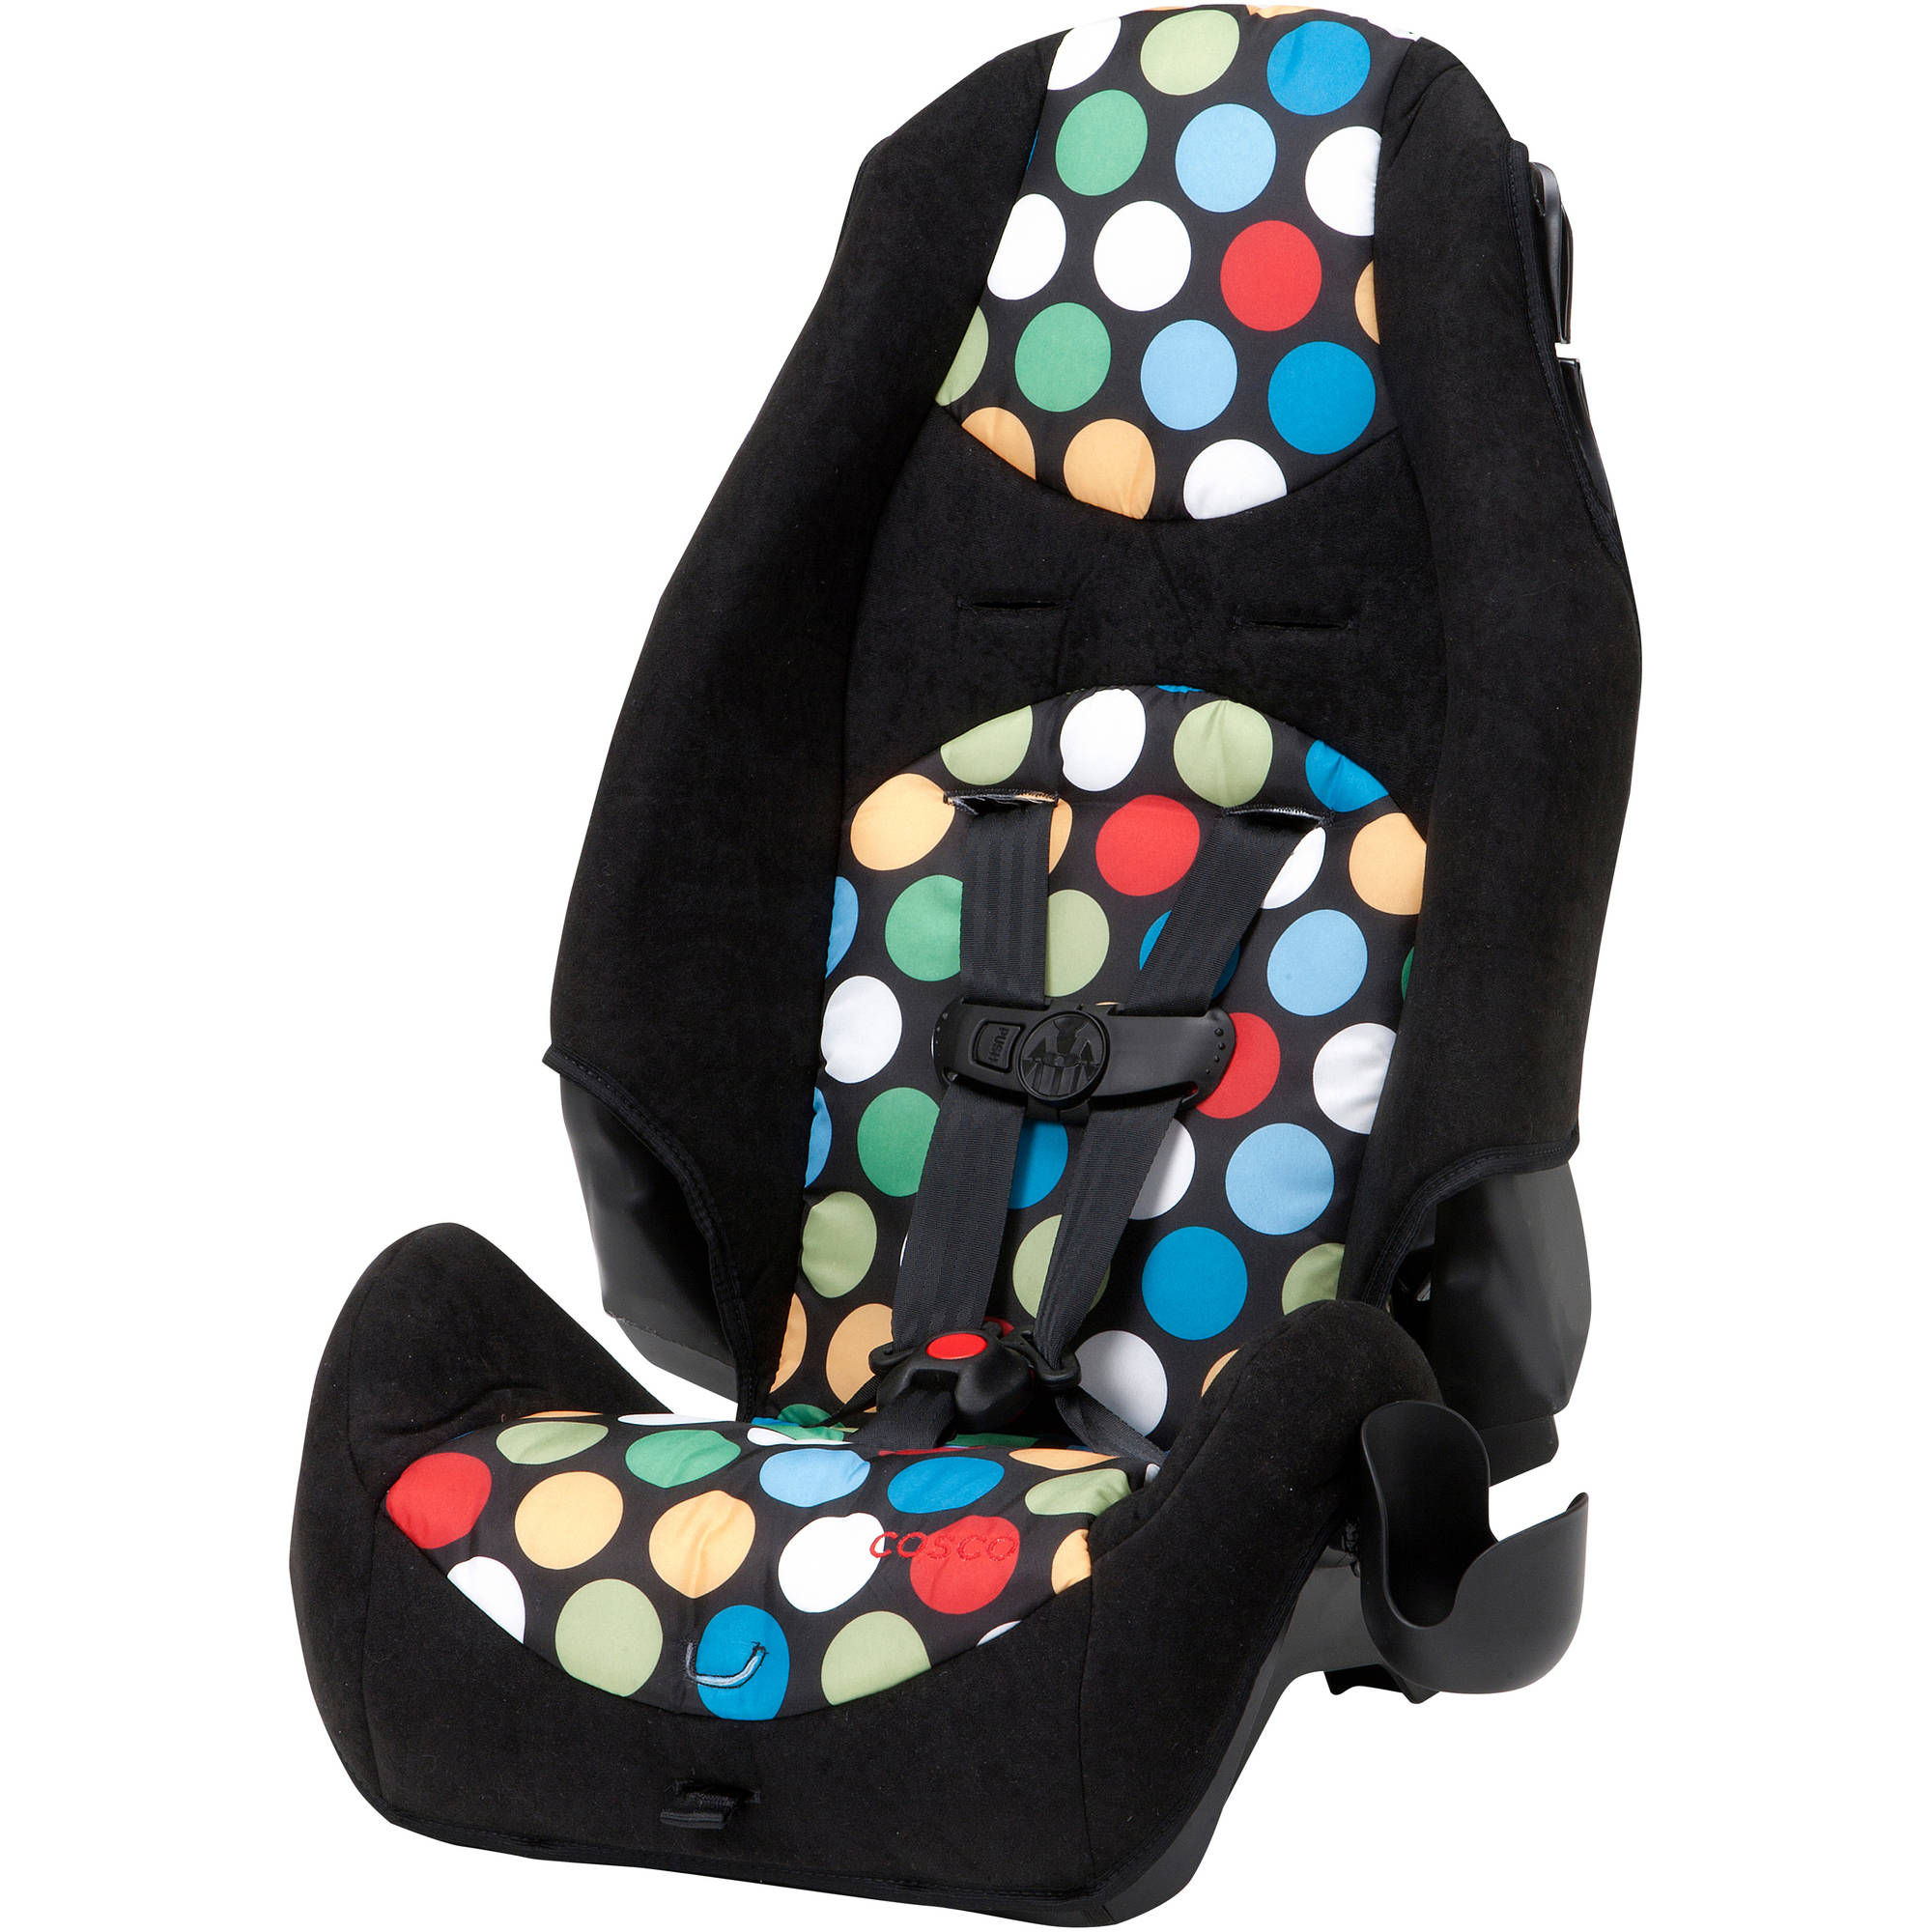 Cosco Highback 2-in-1 Booster Car Seat, Broadway Dots